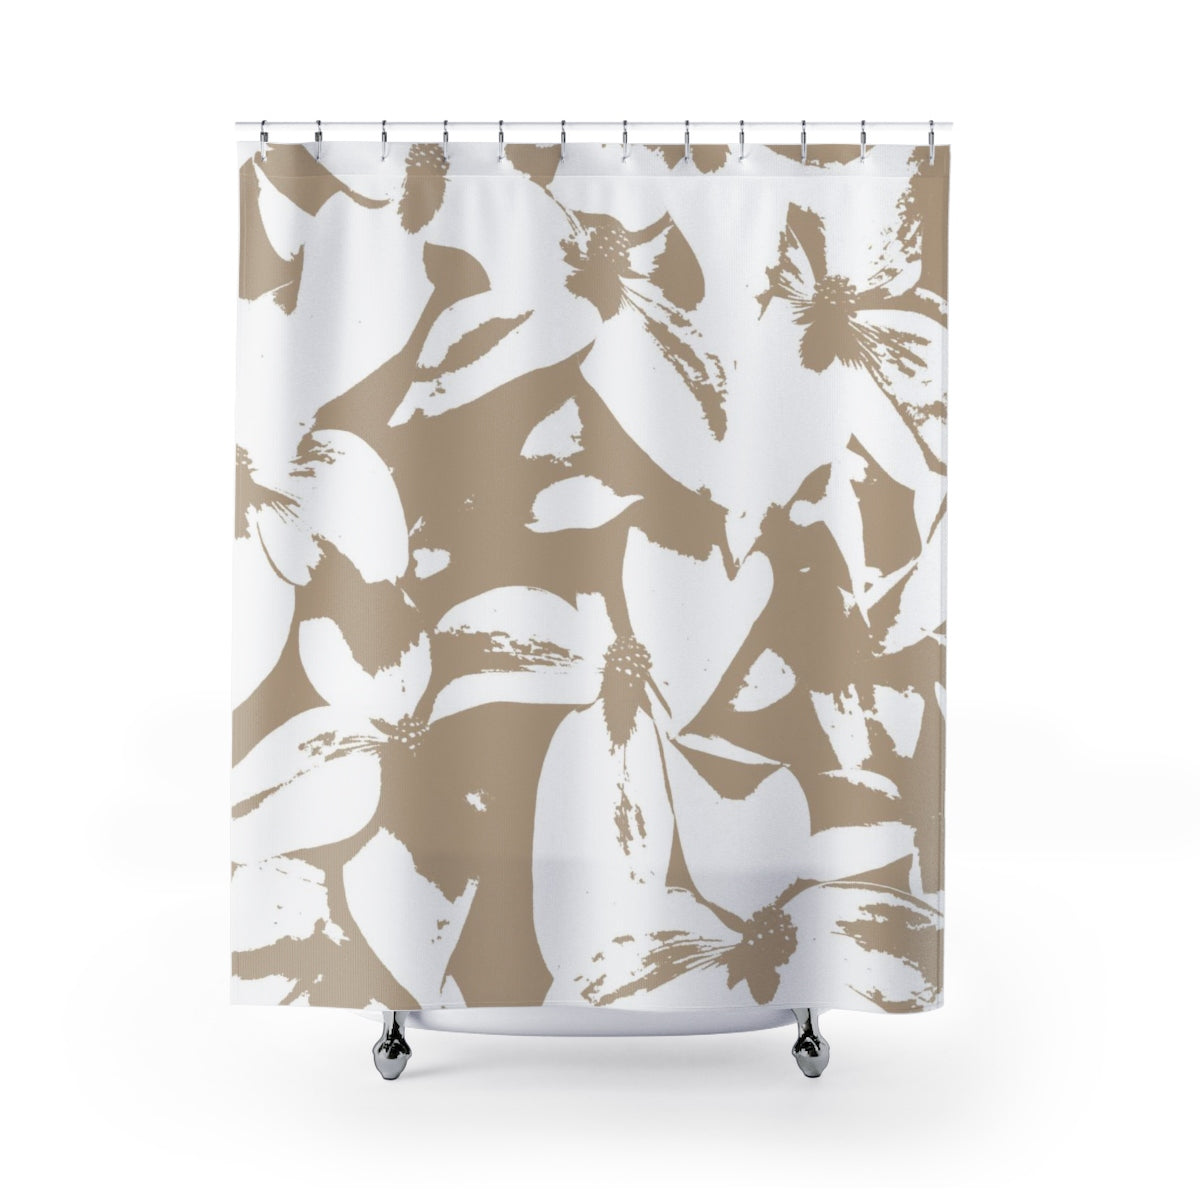 Kousa Dogwood Large-Format Contemporary Art Print in Monochromatic Beige Shower Curtain - Metro Shower Curtains